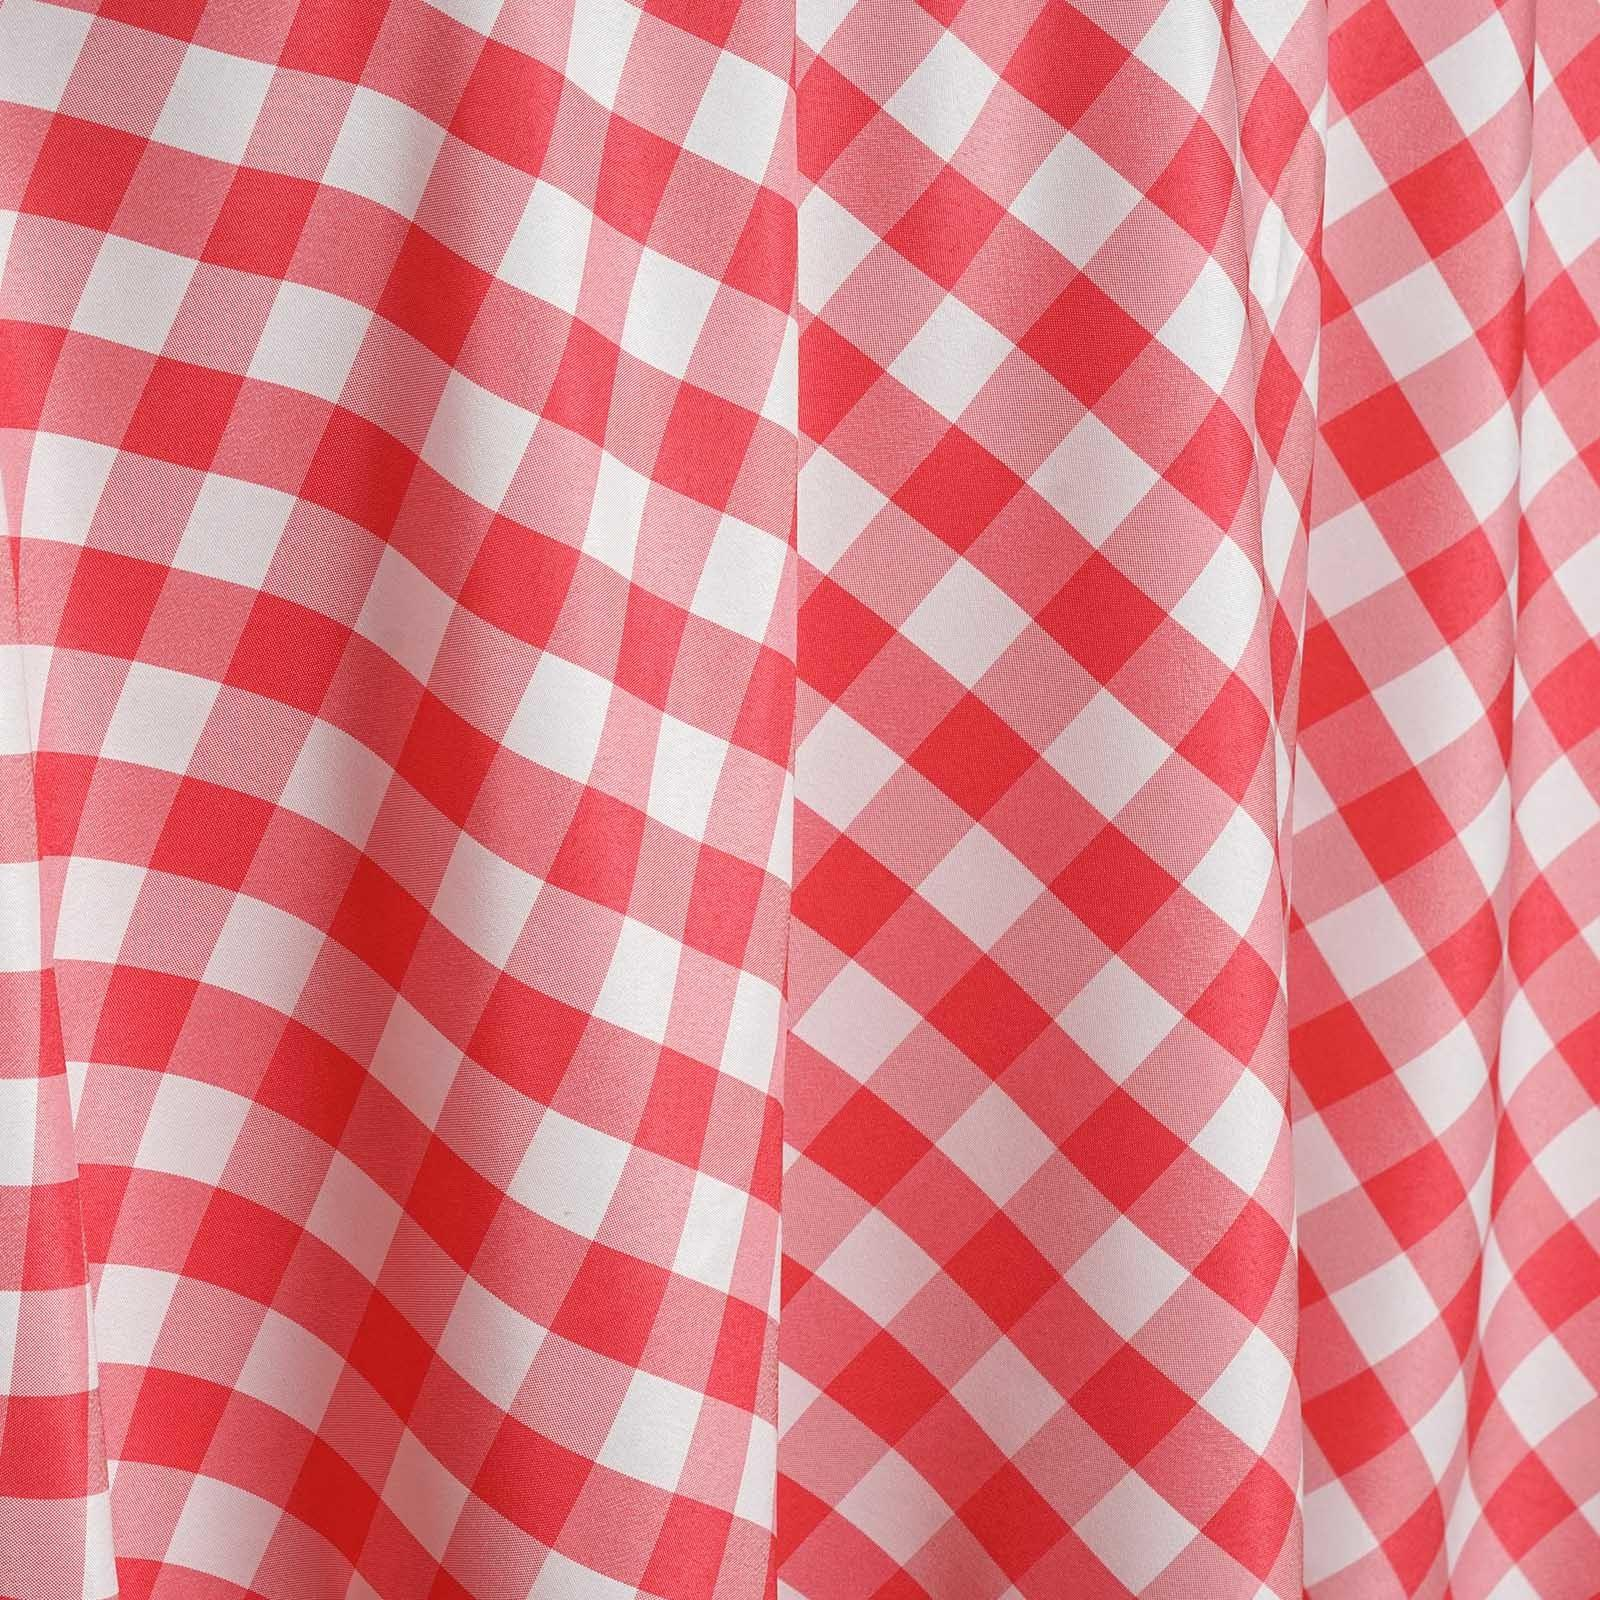 120 Checkered Gingham Polyester Round Tablecloth Wedding